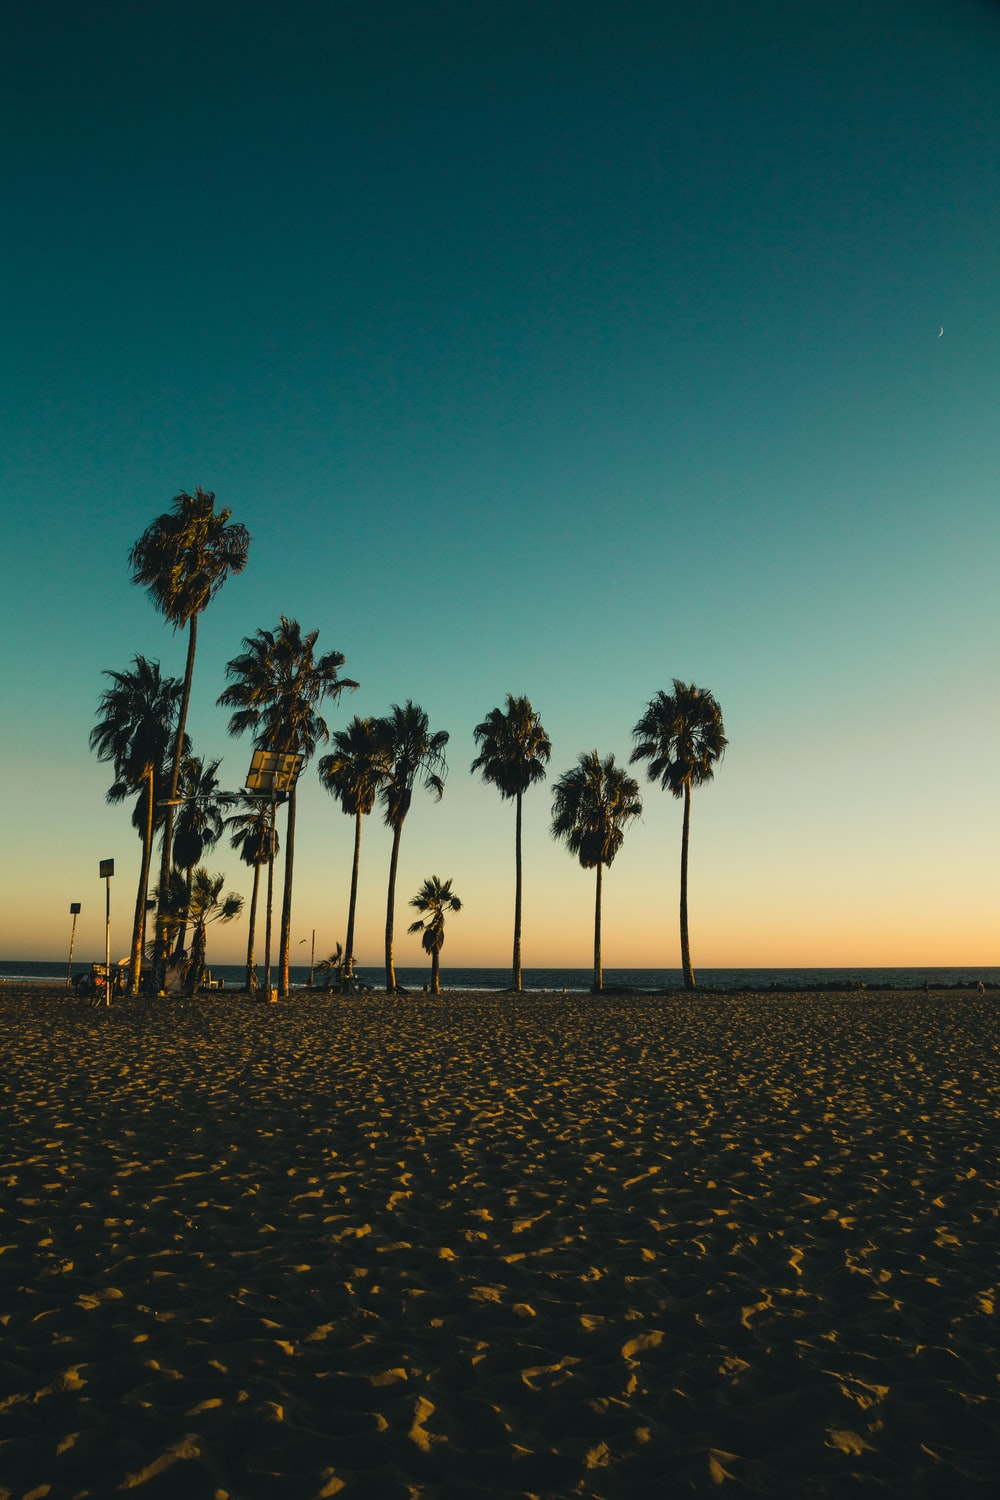 coconut trees on beach sand during golden hour